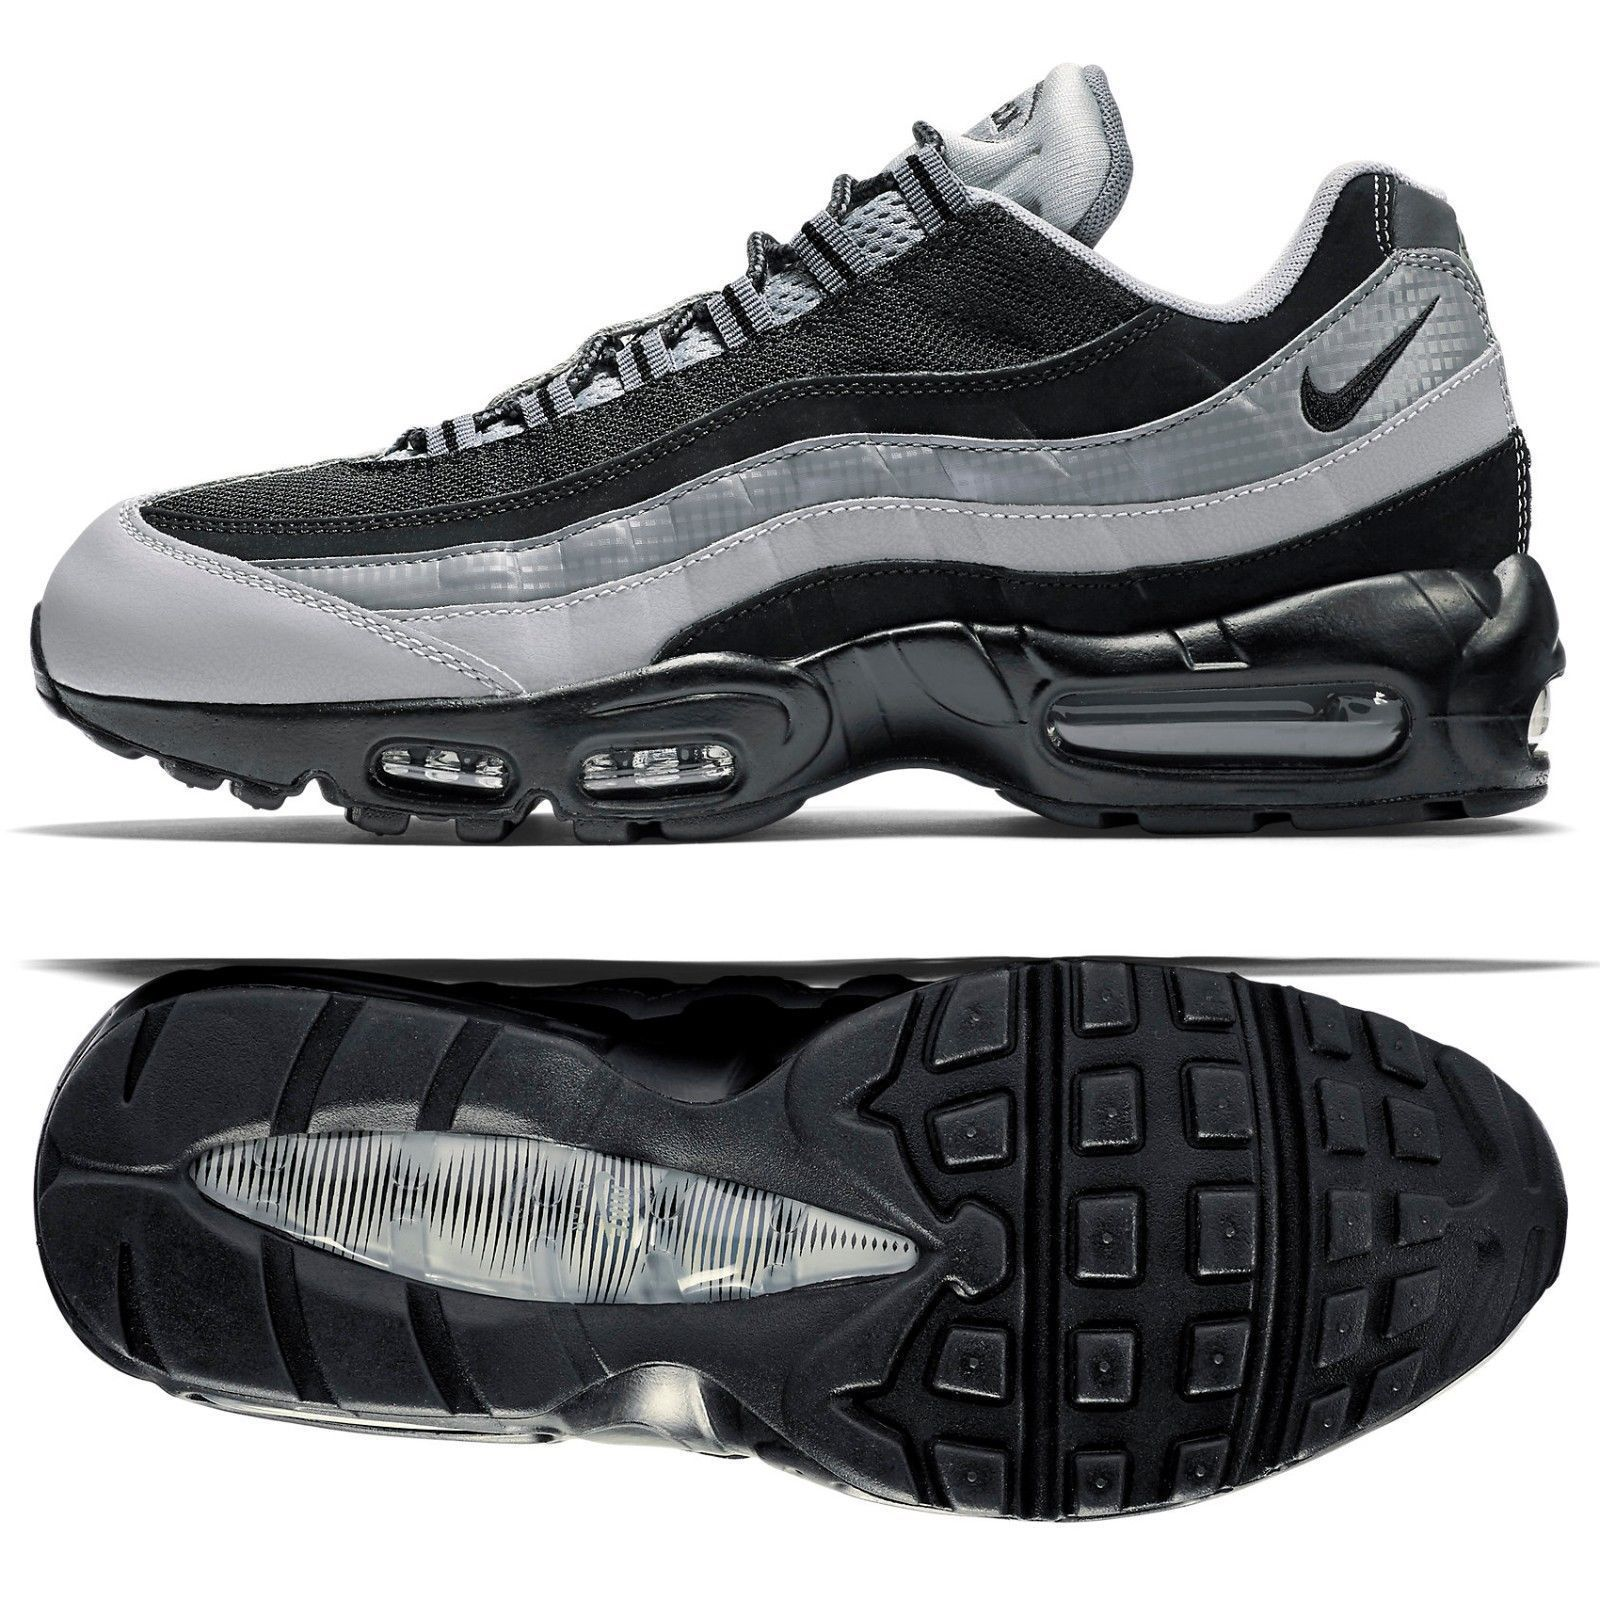 ac0009791f 57. 57. Previous. NIKE AIR MAX 95 ESSENTIAL OG BLACK/WOLF GREY SIZE 10.5  BRAND NEW (749766